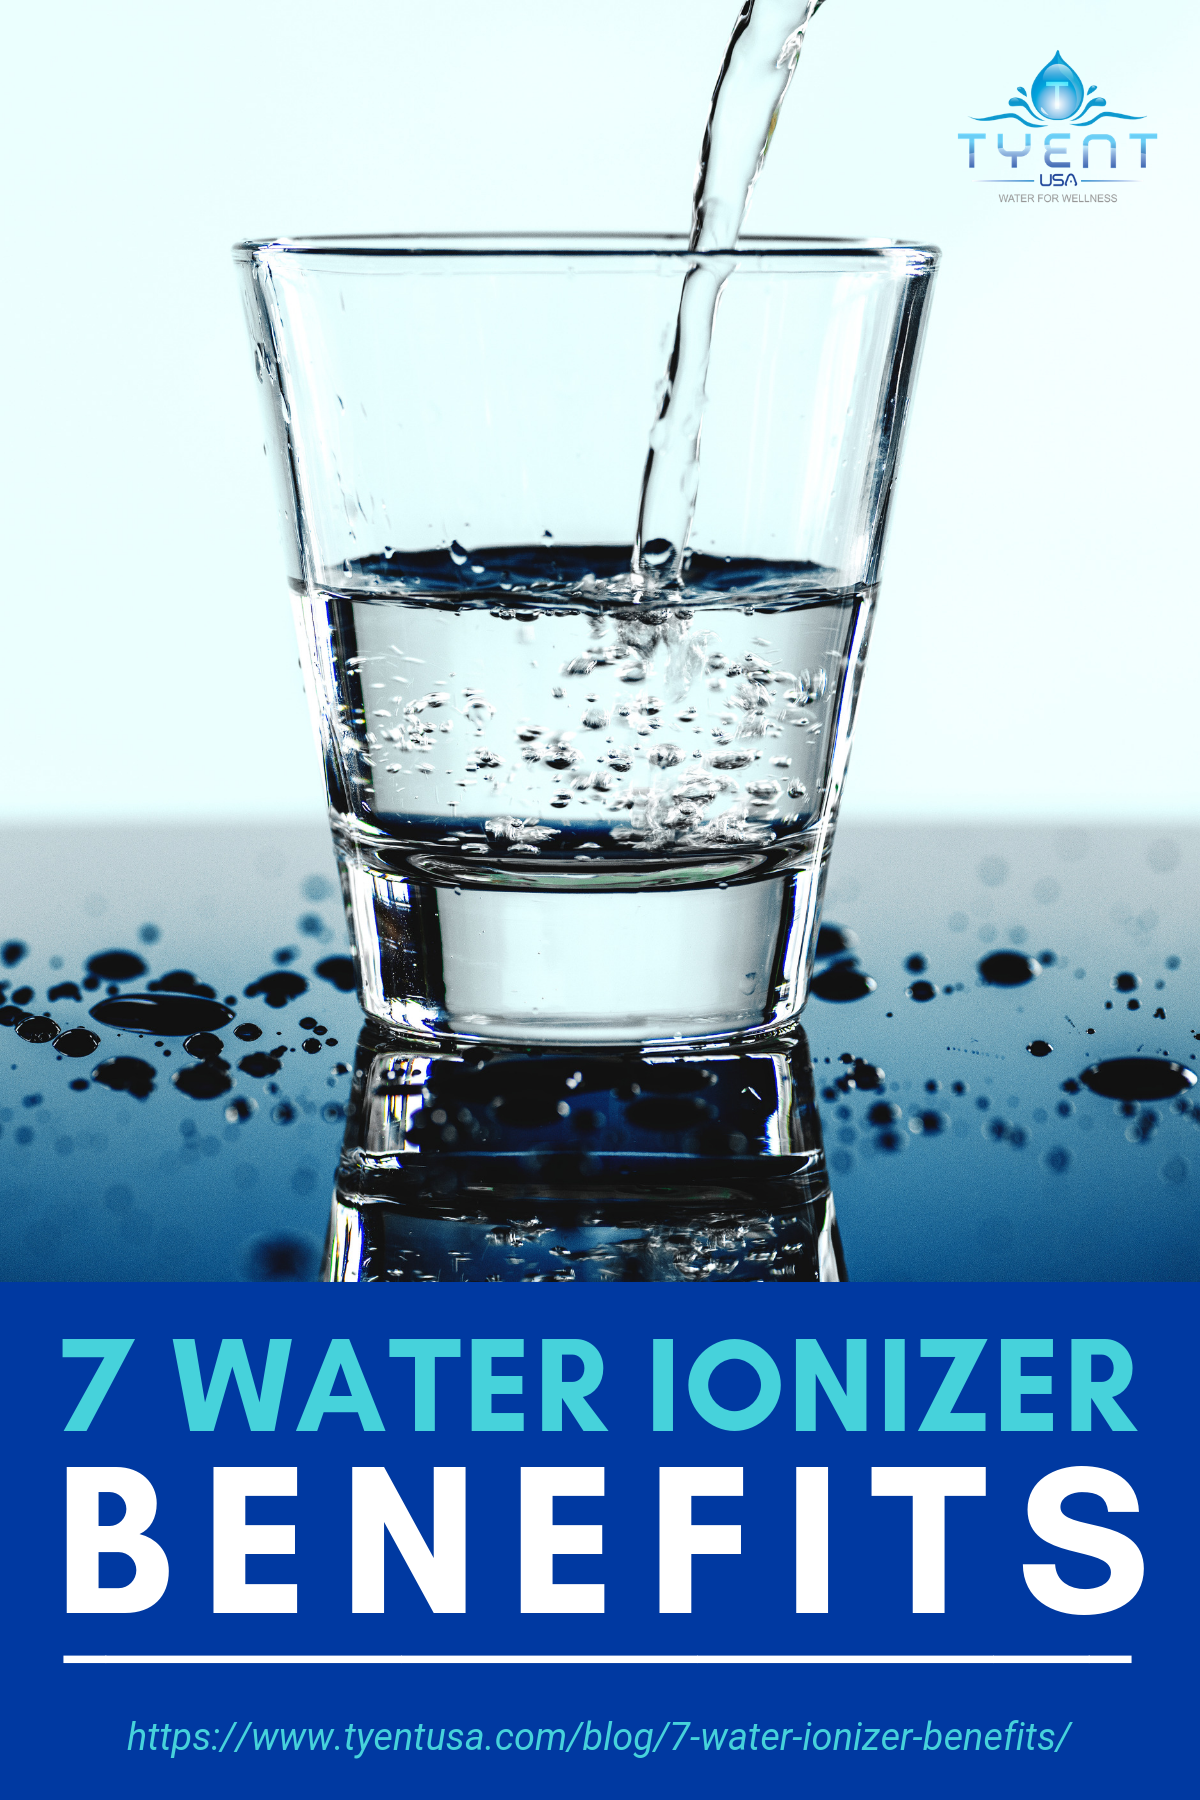 7 Water Ionizer Benefits! | https://www.tyentusa.com/blog/7-water-ionizer-benefits/